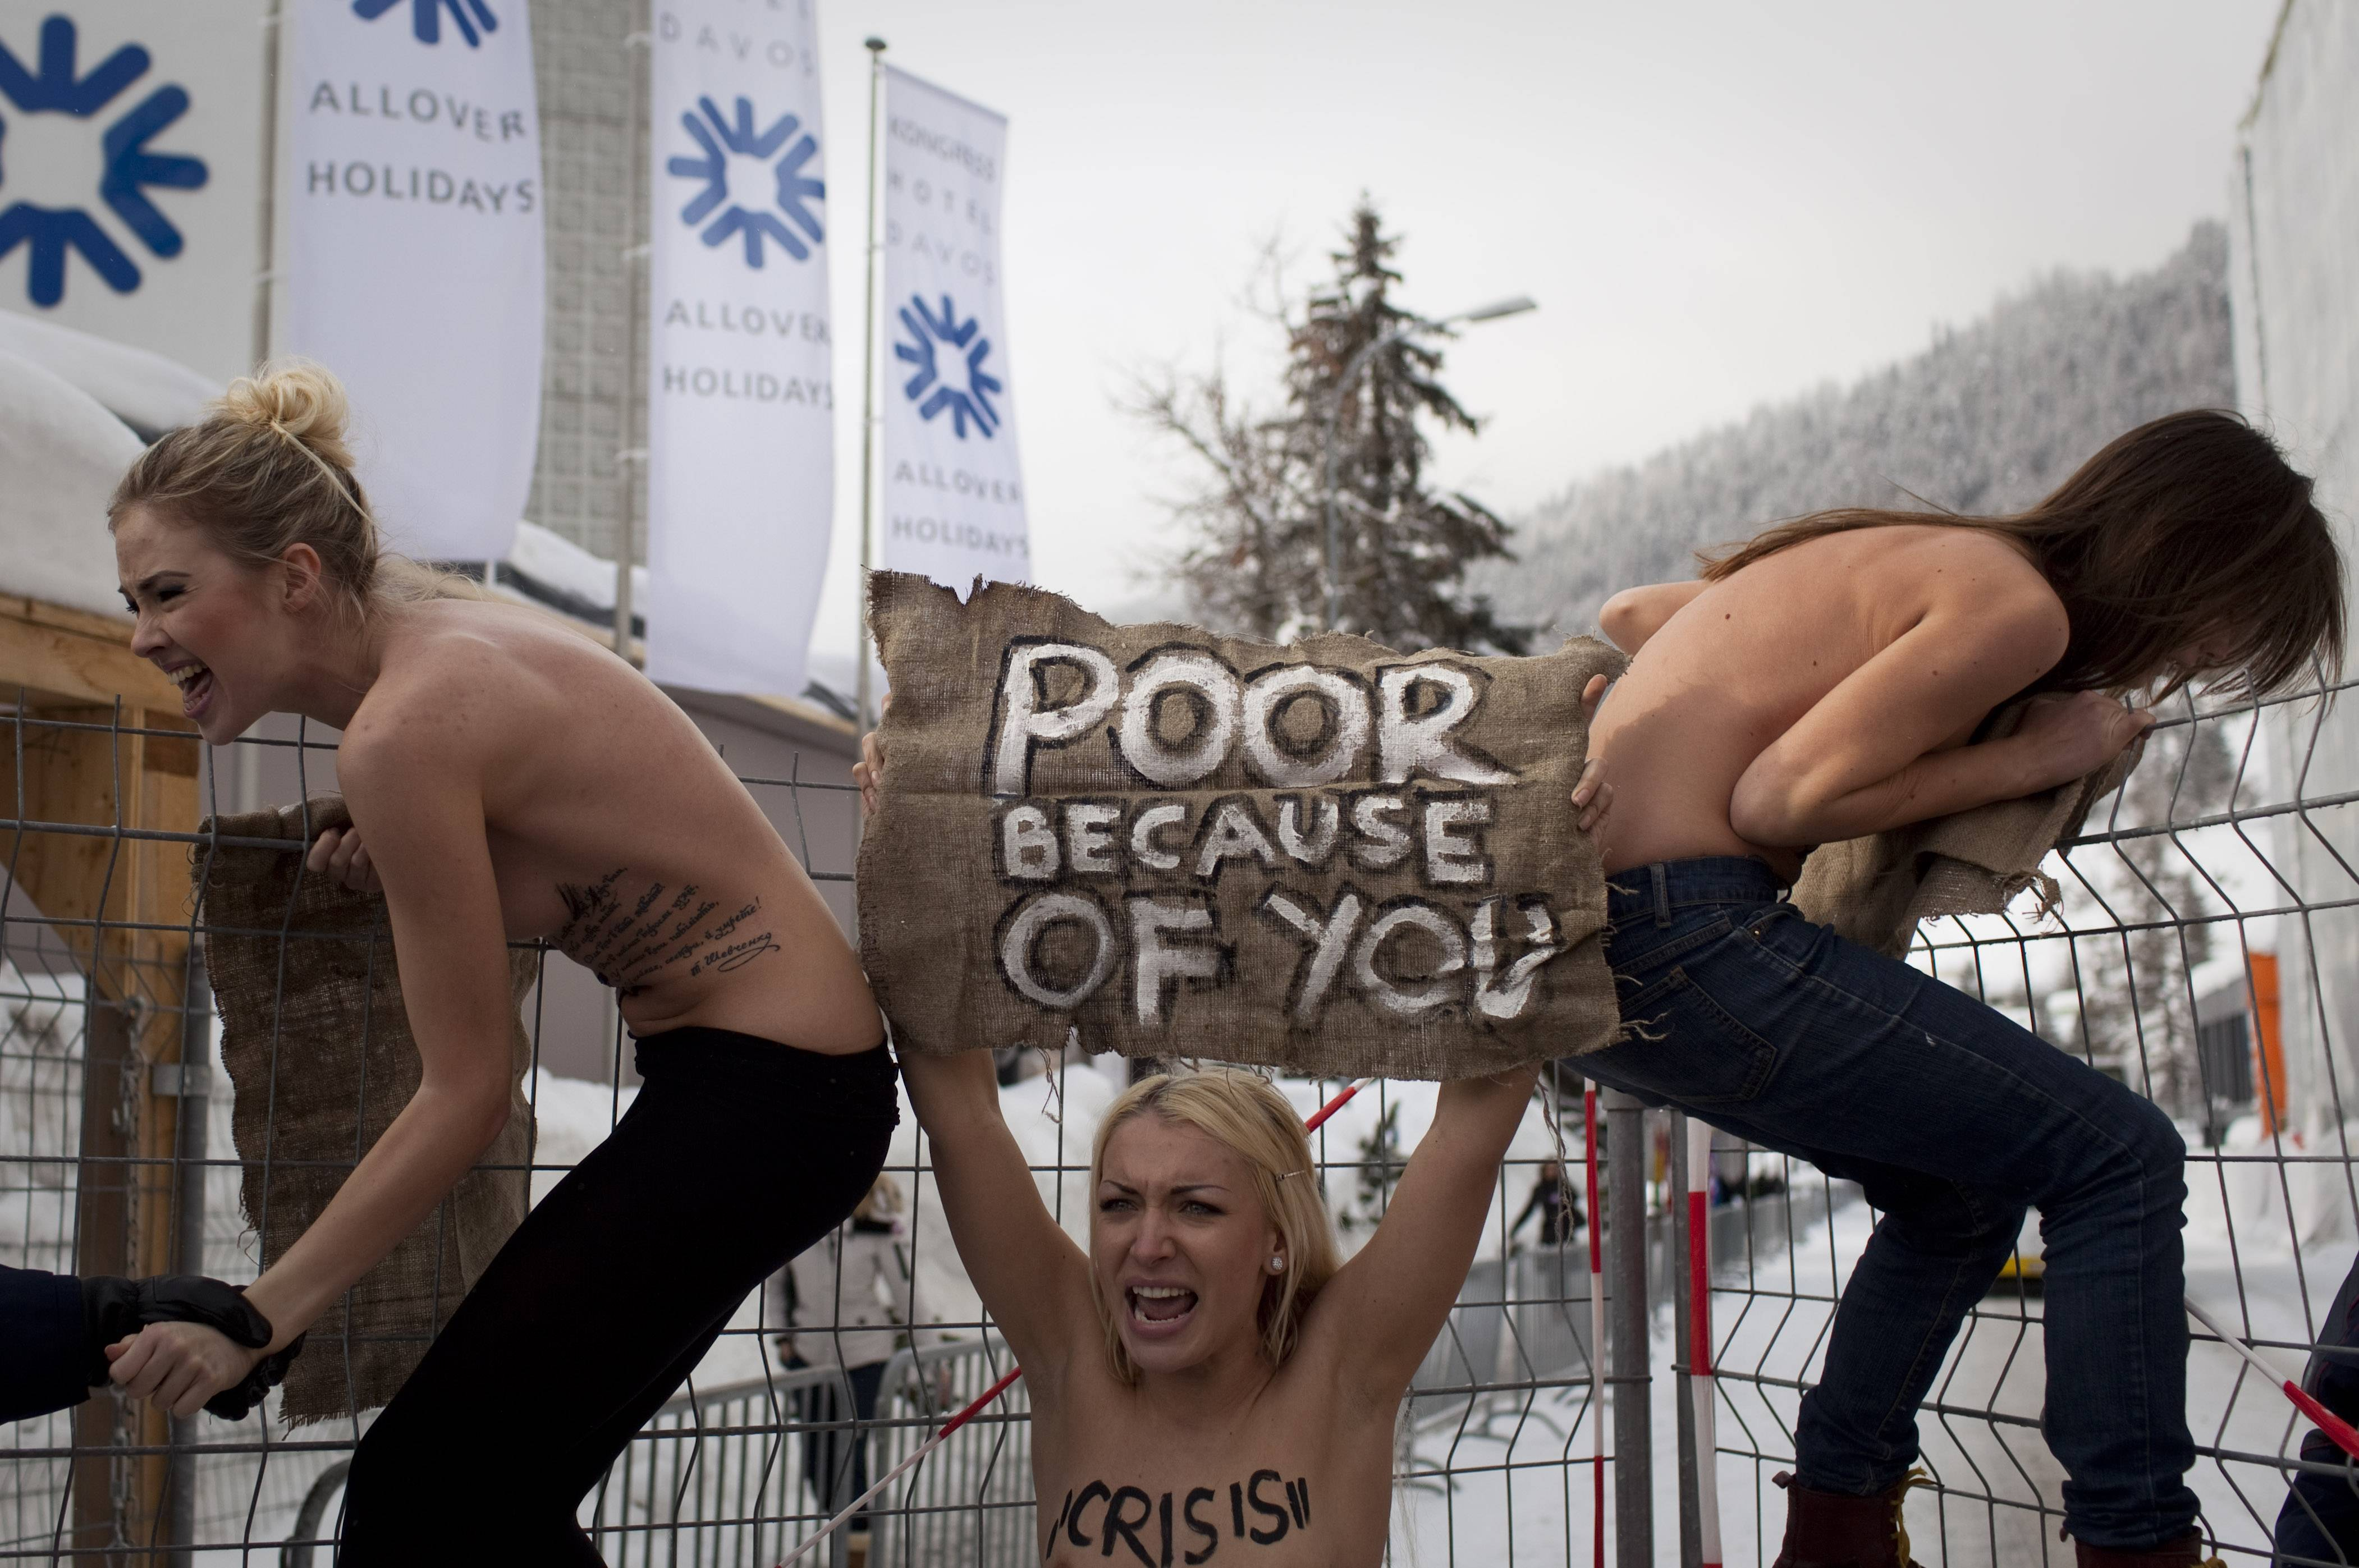 In this Saturday, Jan. 28, 2012 ile photo made by Associated Press photographer Anja Niedringhaus, topless Ukrainian protesters climb up a fence at the entrance to the congress center where the World Economic Forum takes place in Davos, Switzerland.